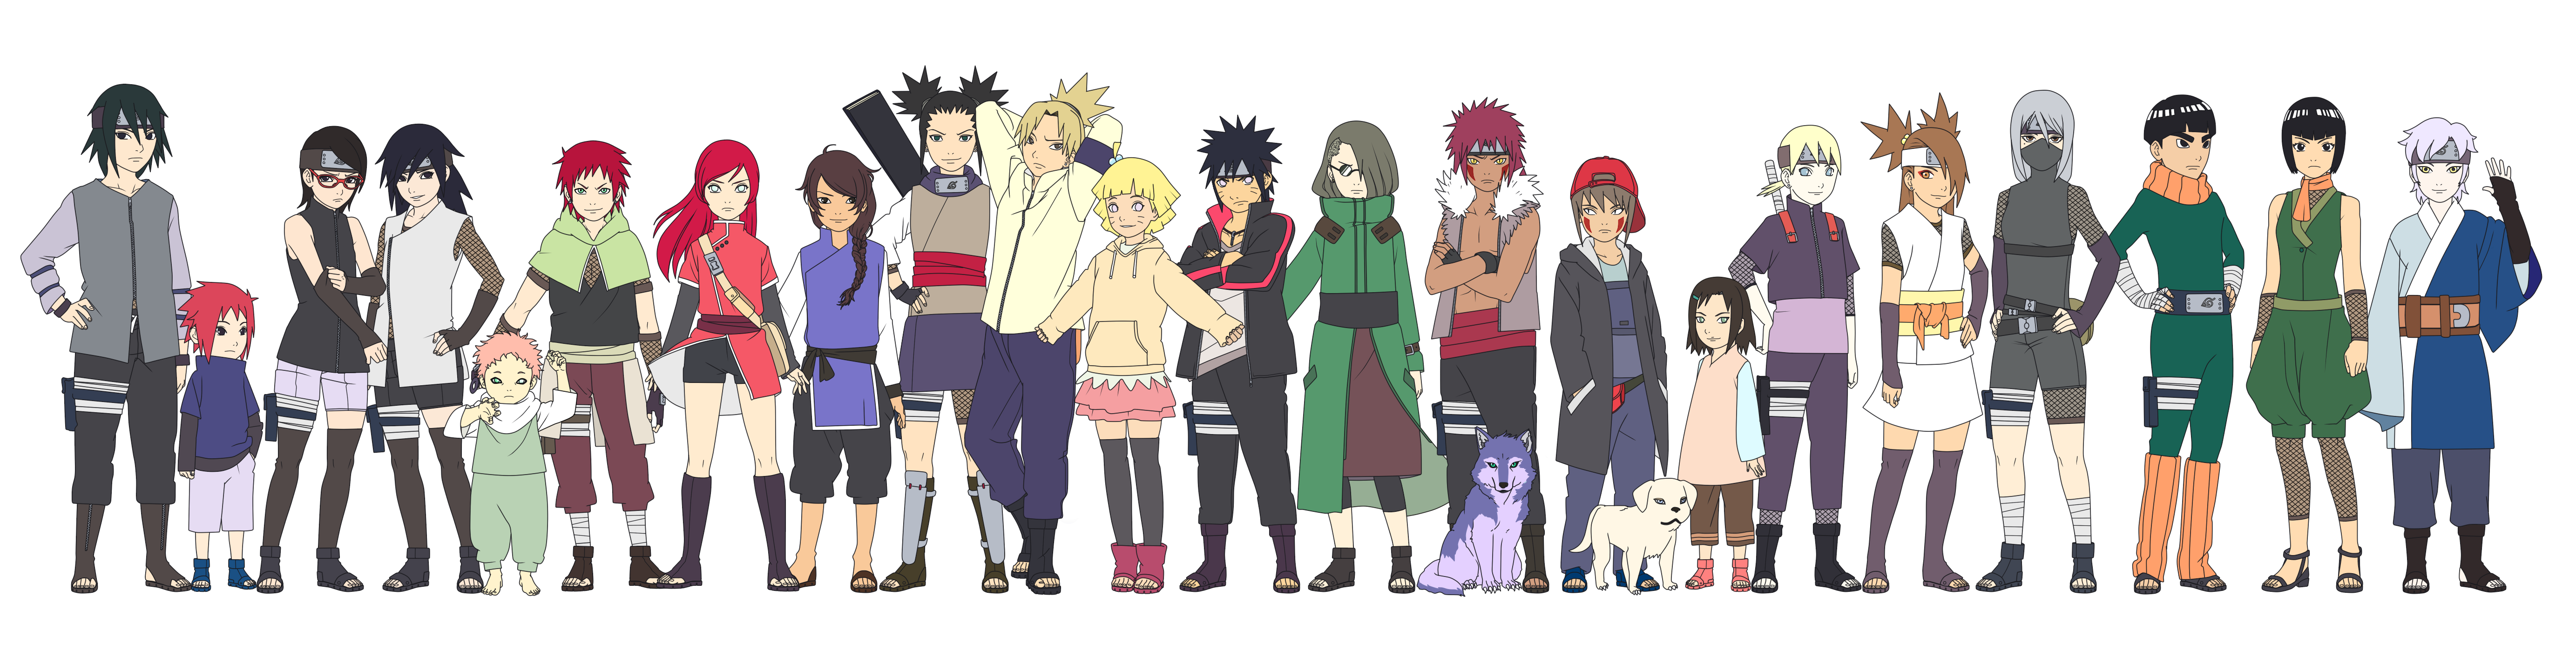 My Naruto children Color by SunakiSabakuno on DeviantArt